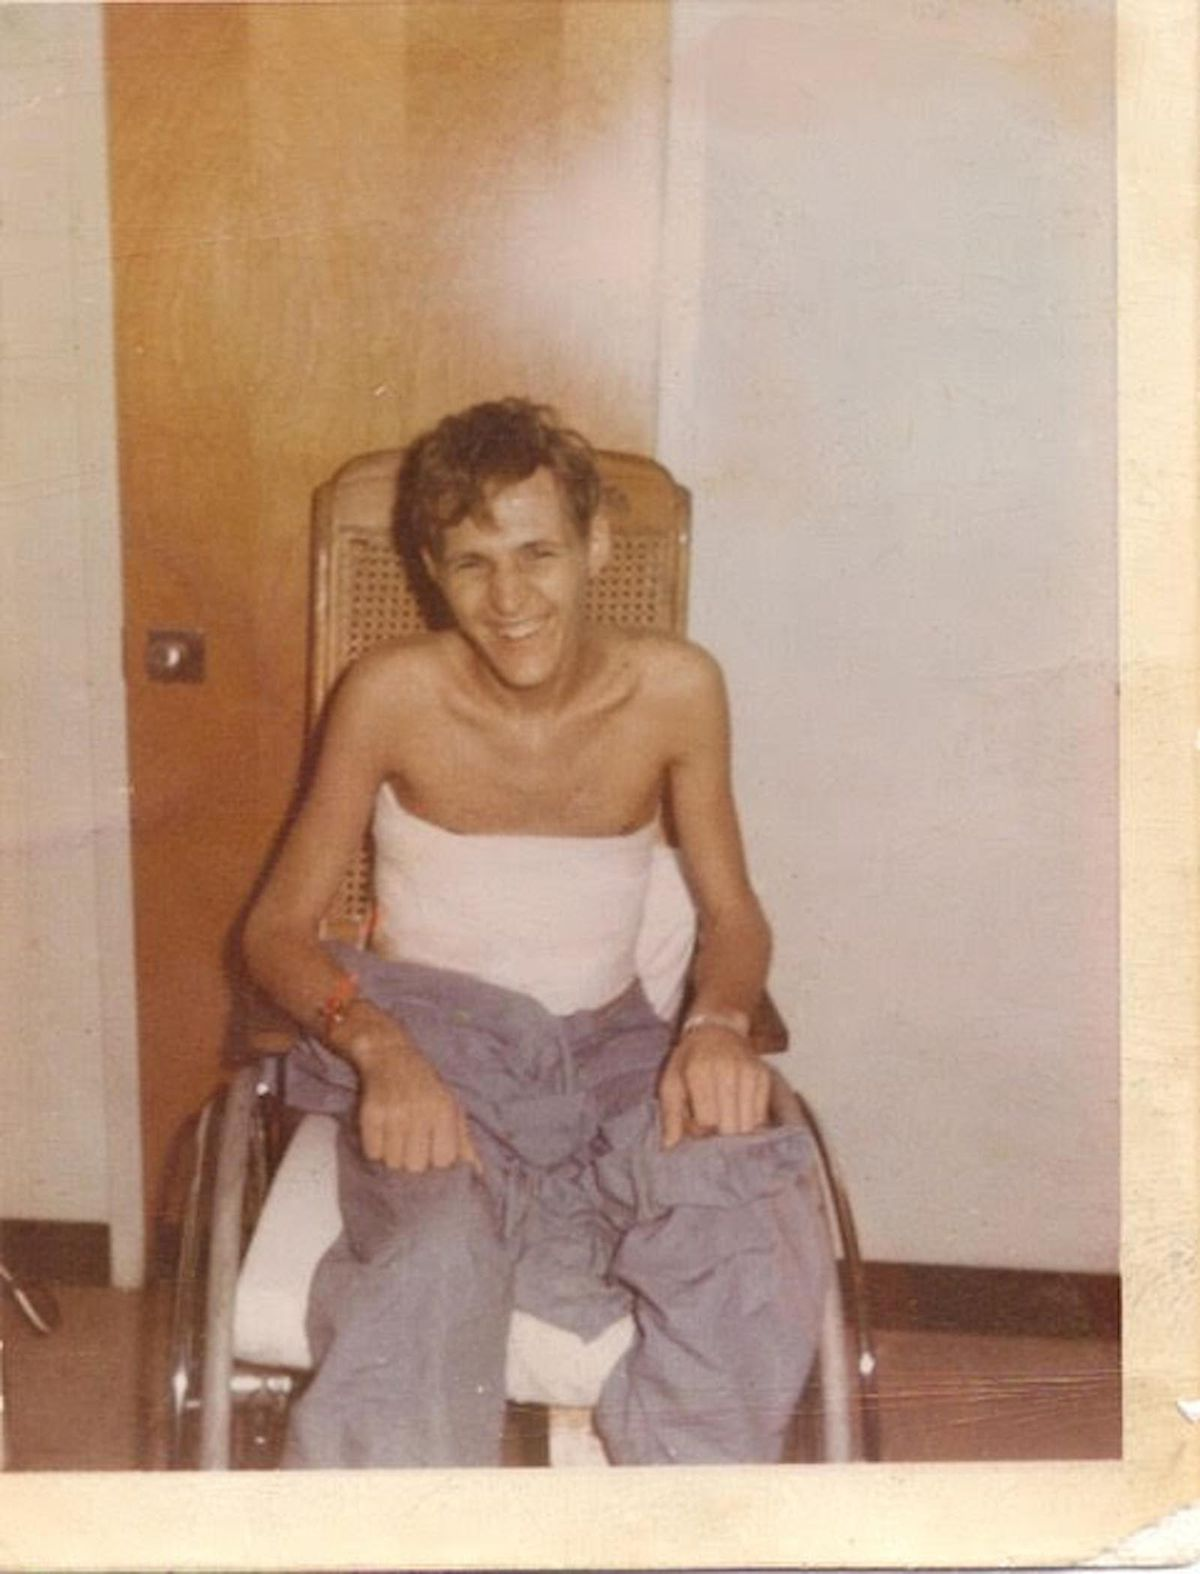 It took 20 months for Jim Zwit to recover from his combat injuries in Vietnam.